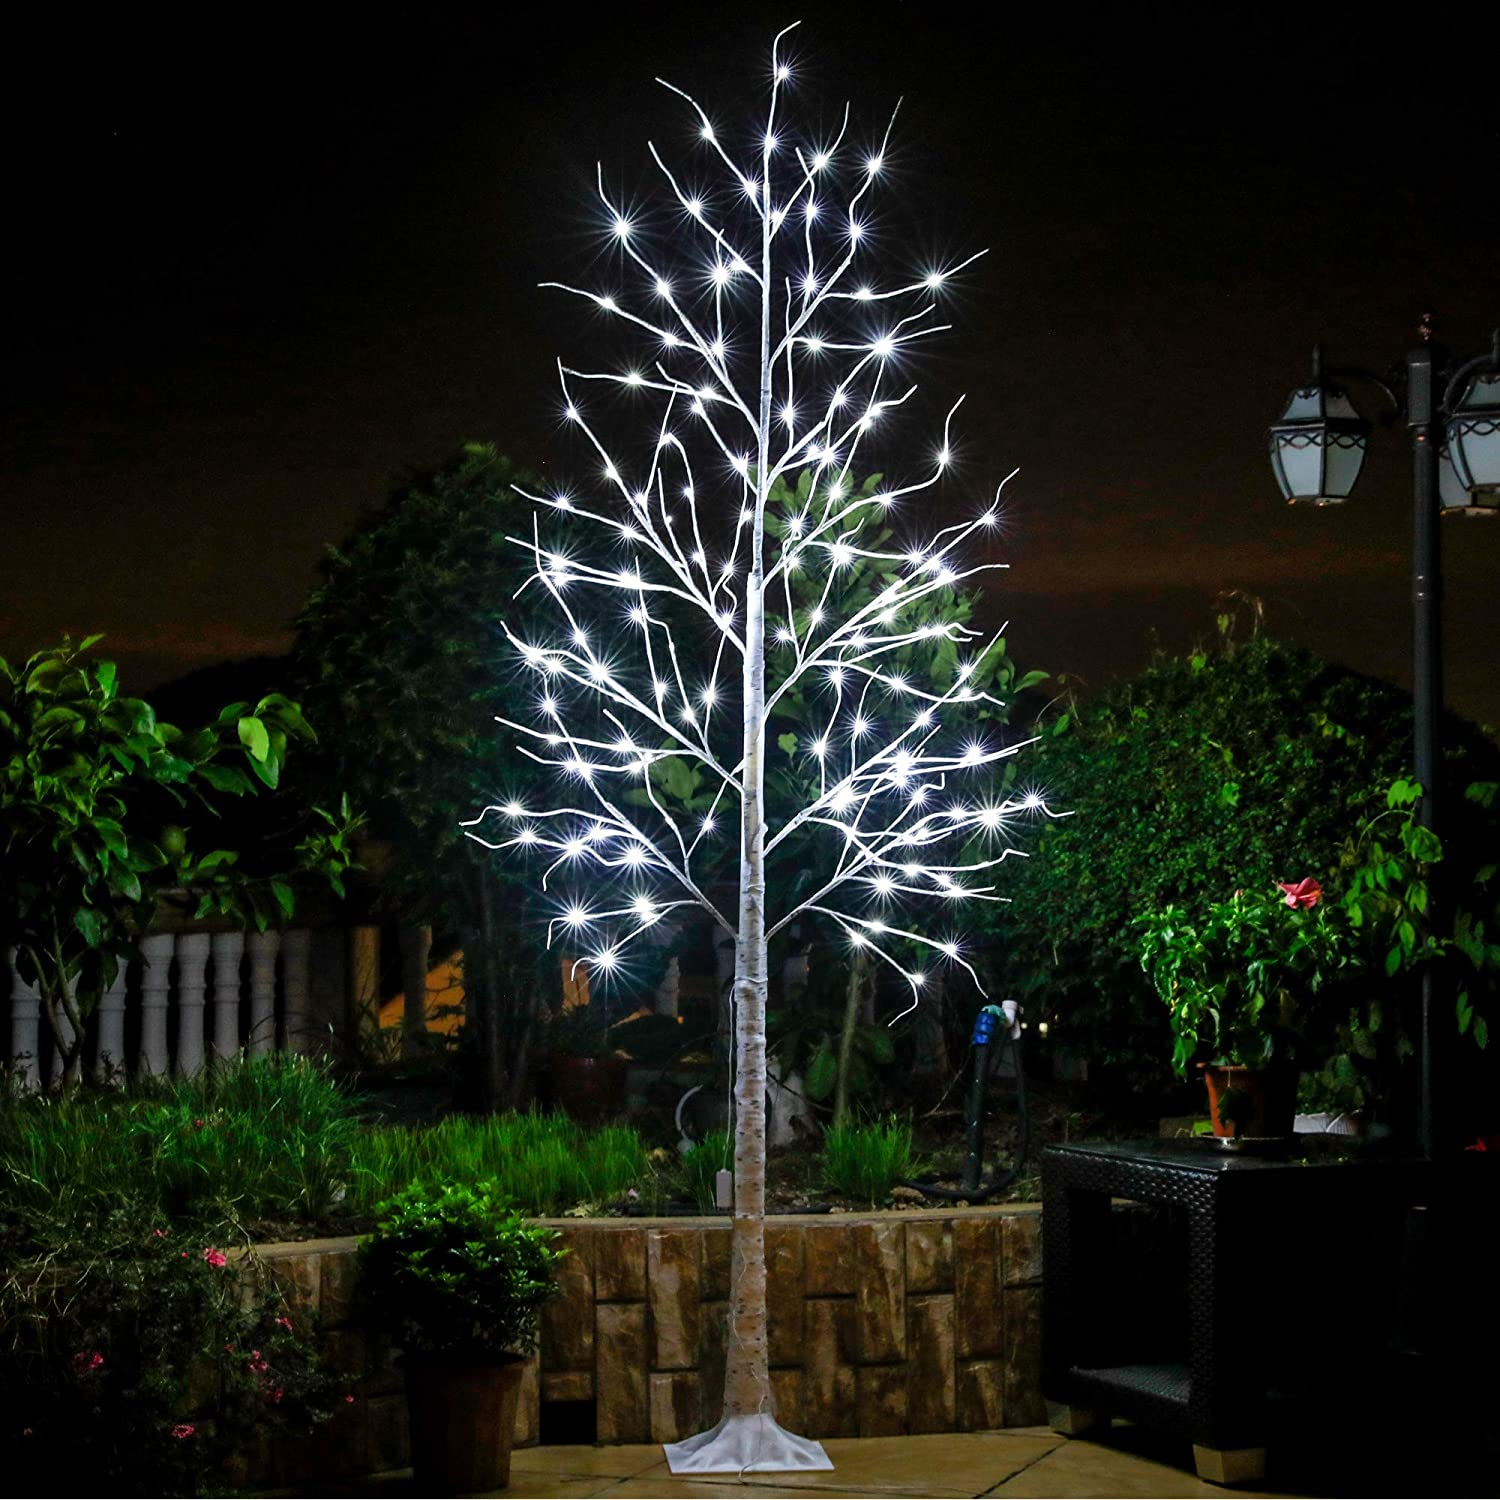 Leruckdite LED Birch Tree 8ft 136L LED Christmas Decorations Lighted Tree Decor for Bedroom/Party/Wedding/Office/Home Outdoor and Indoor Use White…